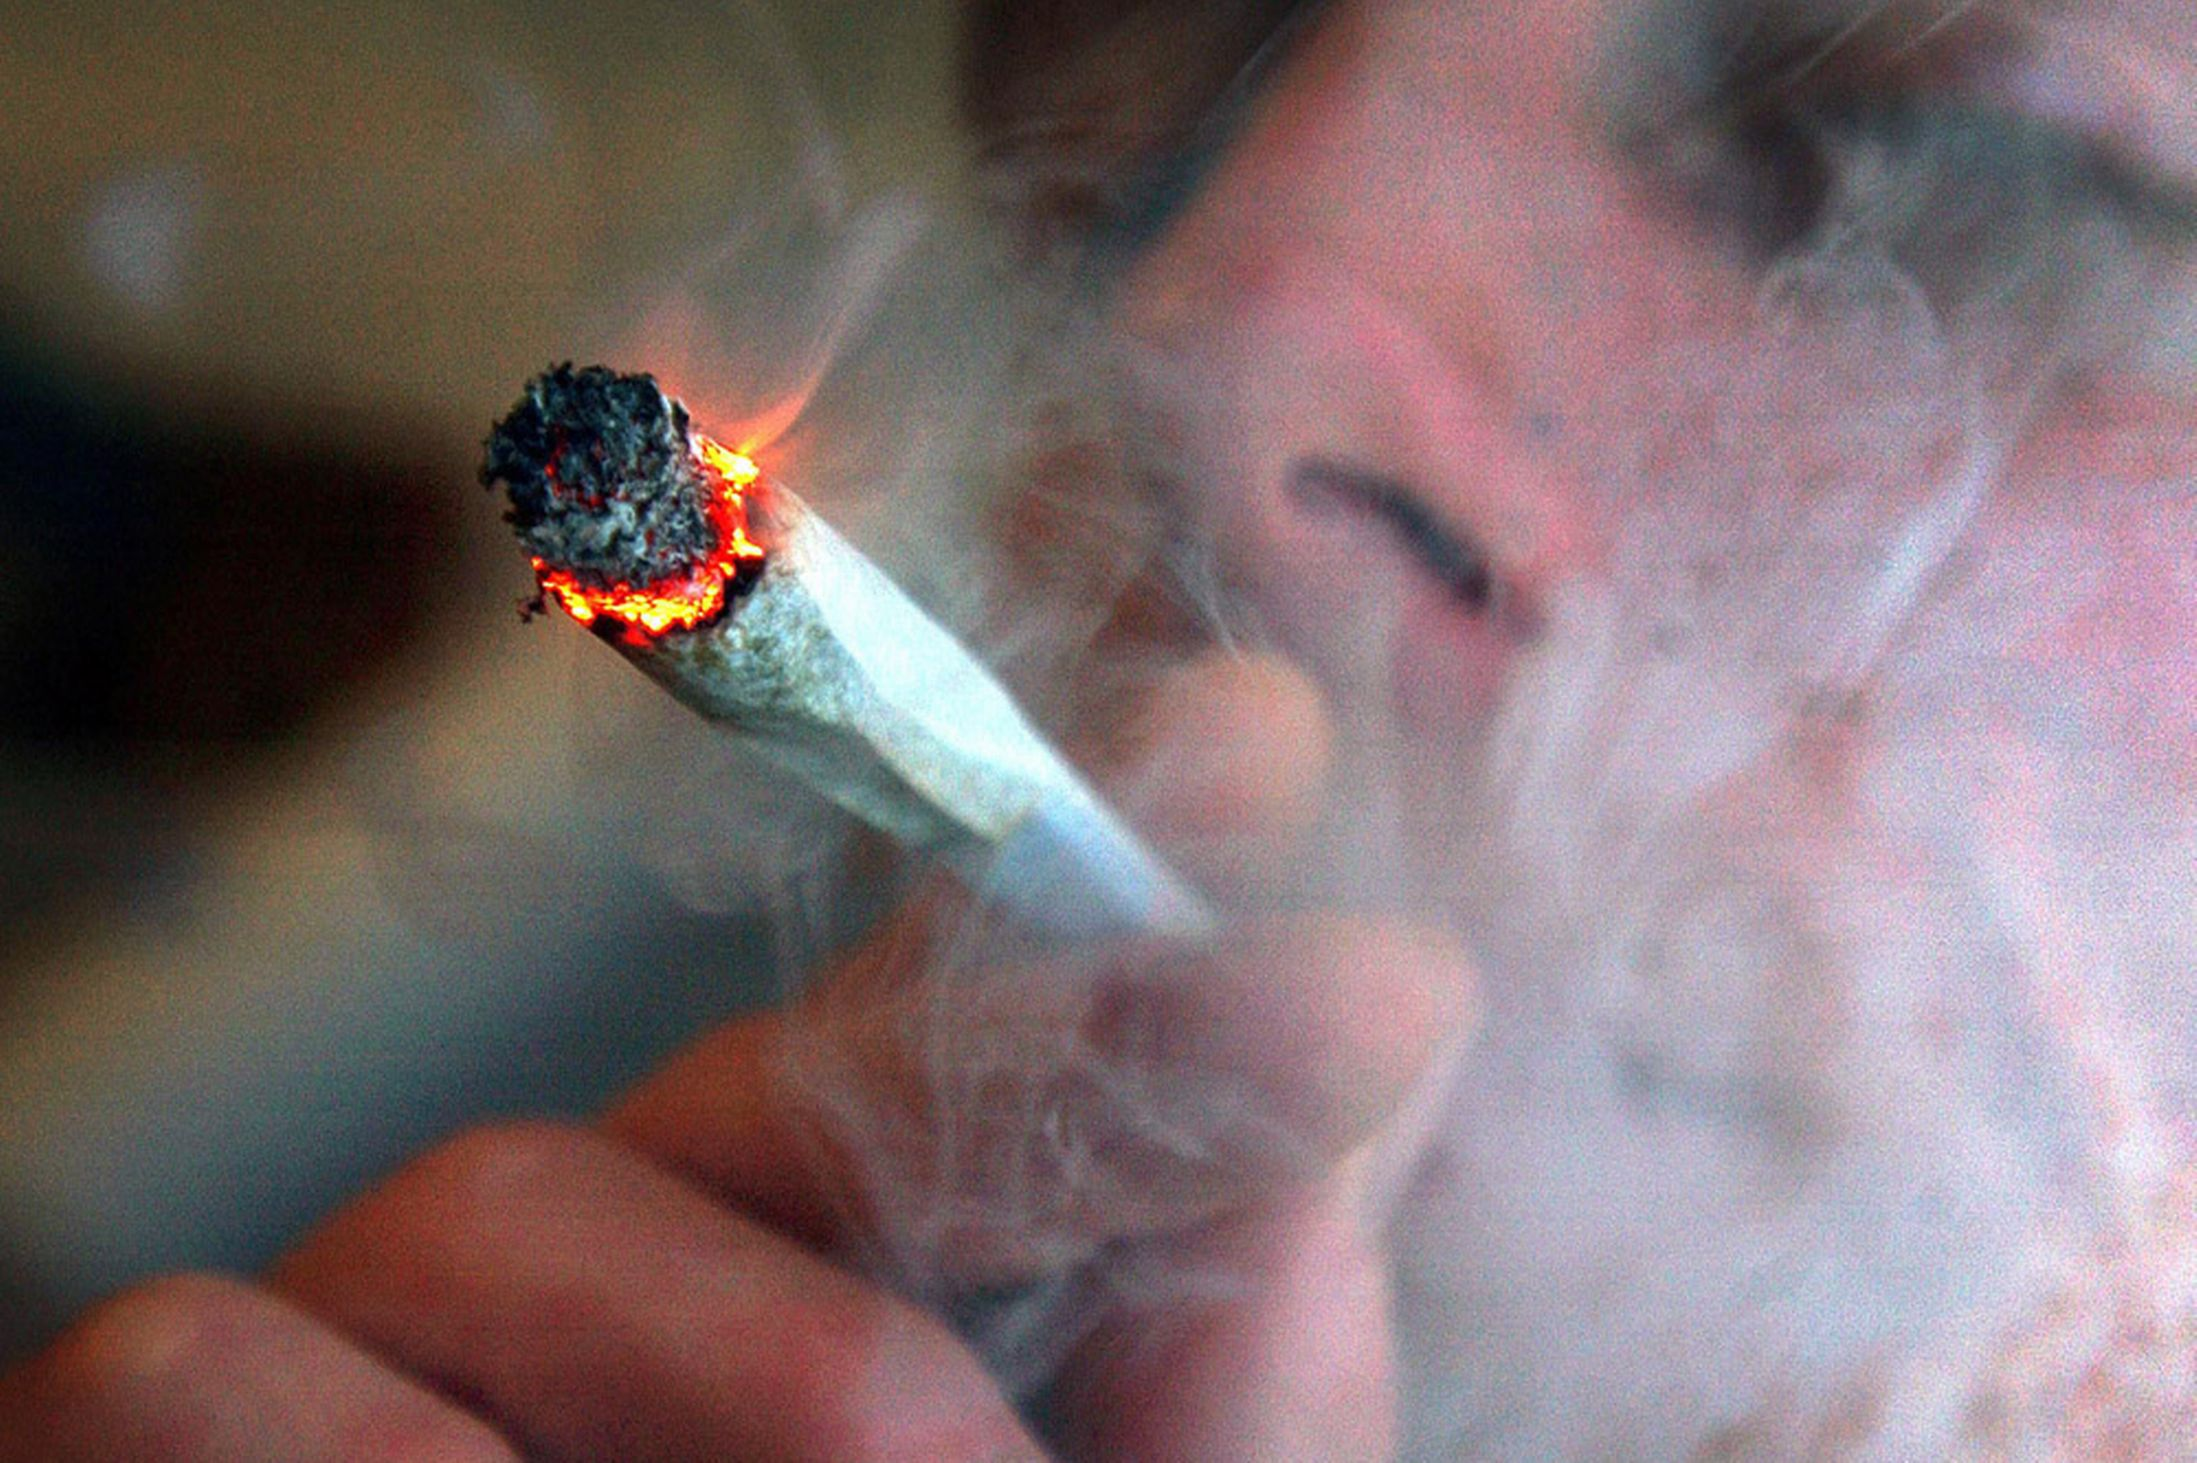 CDC: State Laws Legalizing Marijuana Use Associated With Declining Teen Use